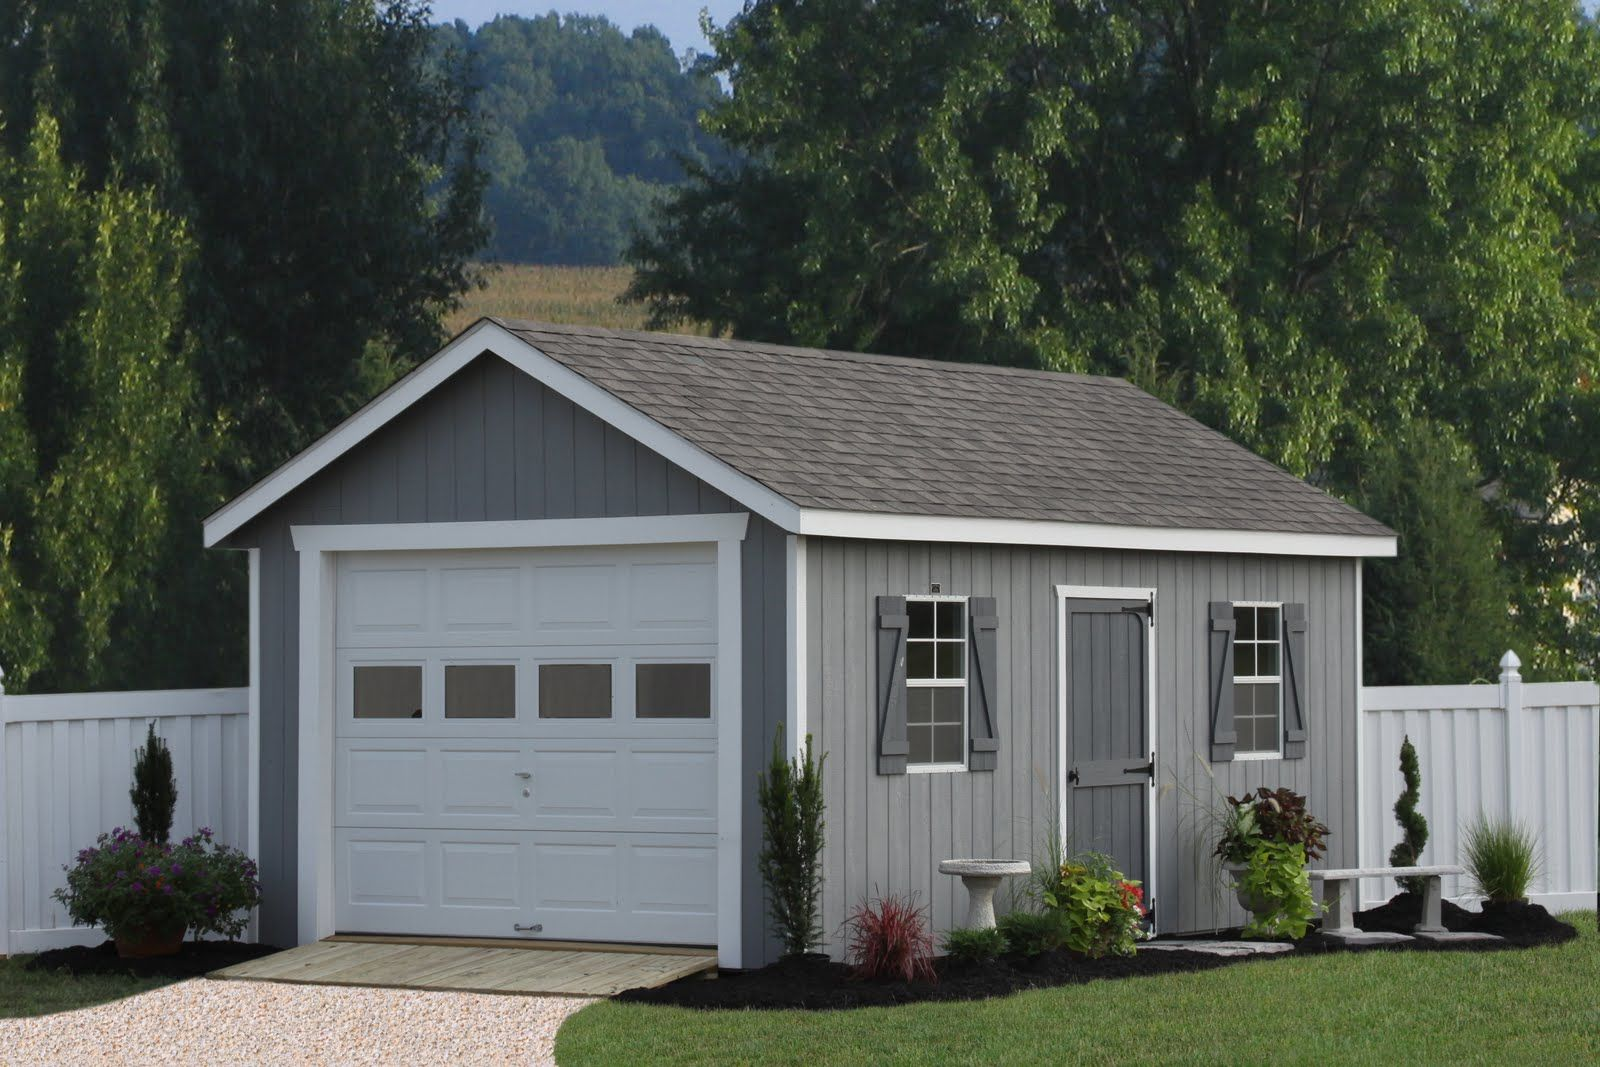 design car rs square parking foot shed sheds